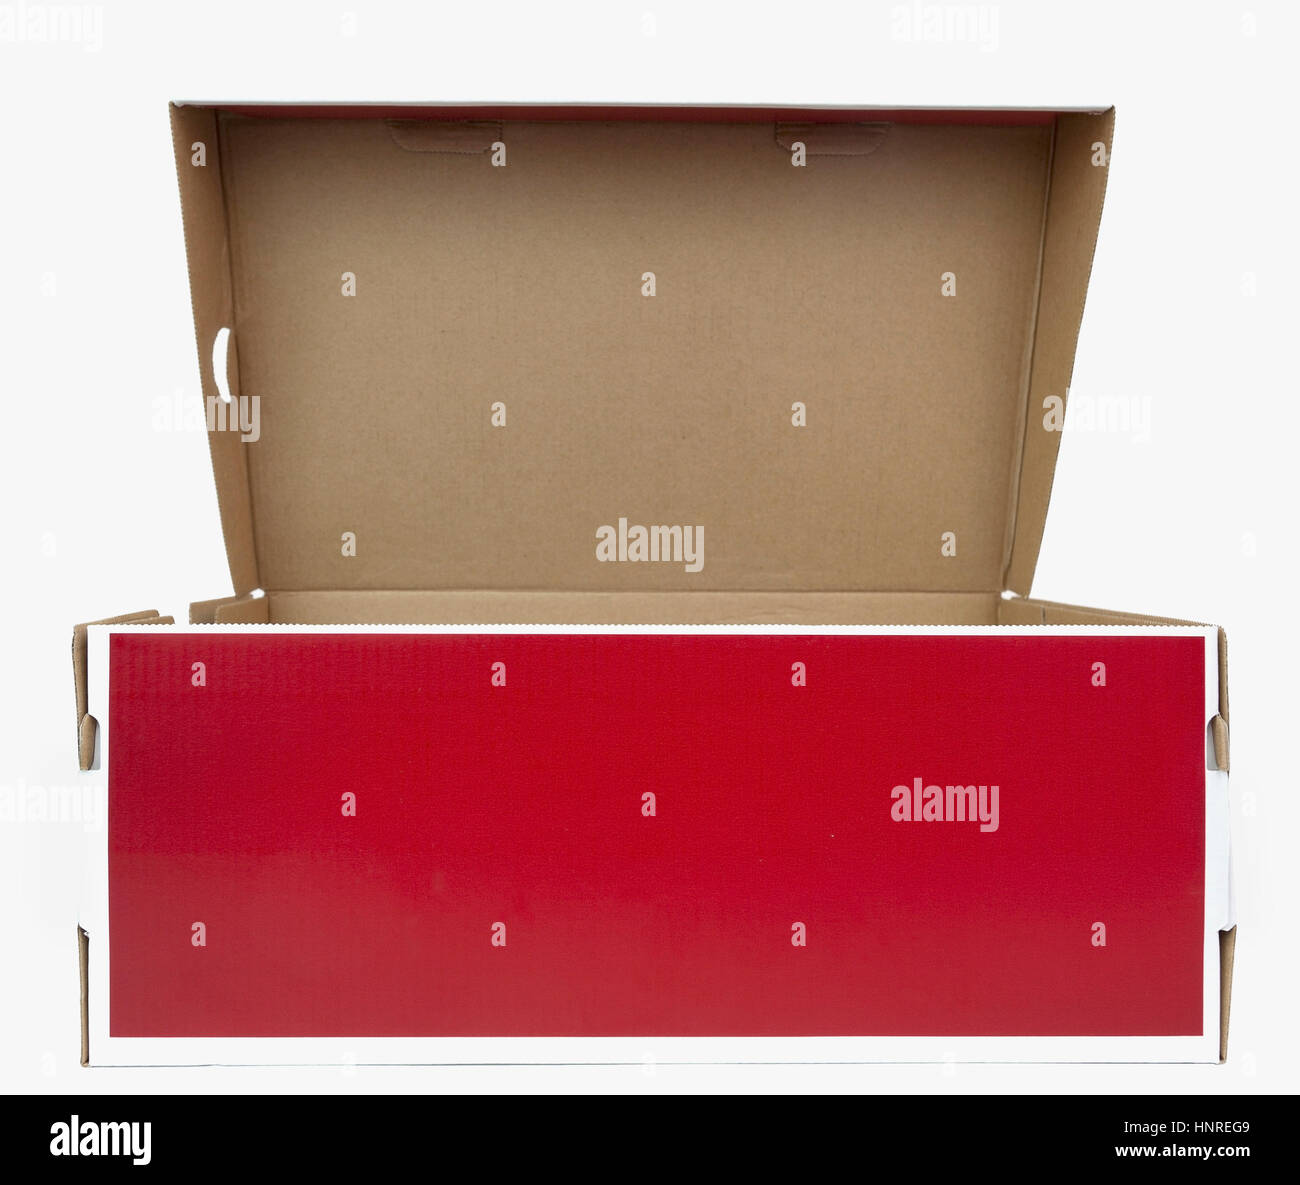 Red and white shoebox with lid open. - Stock Image